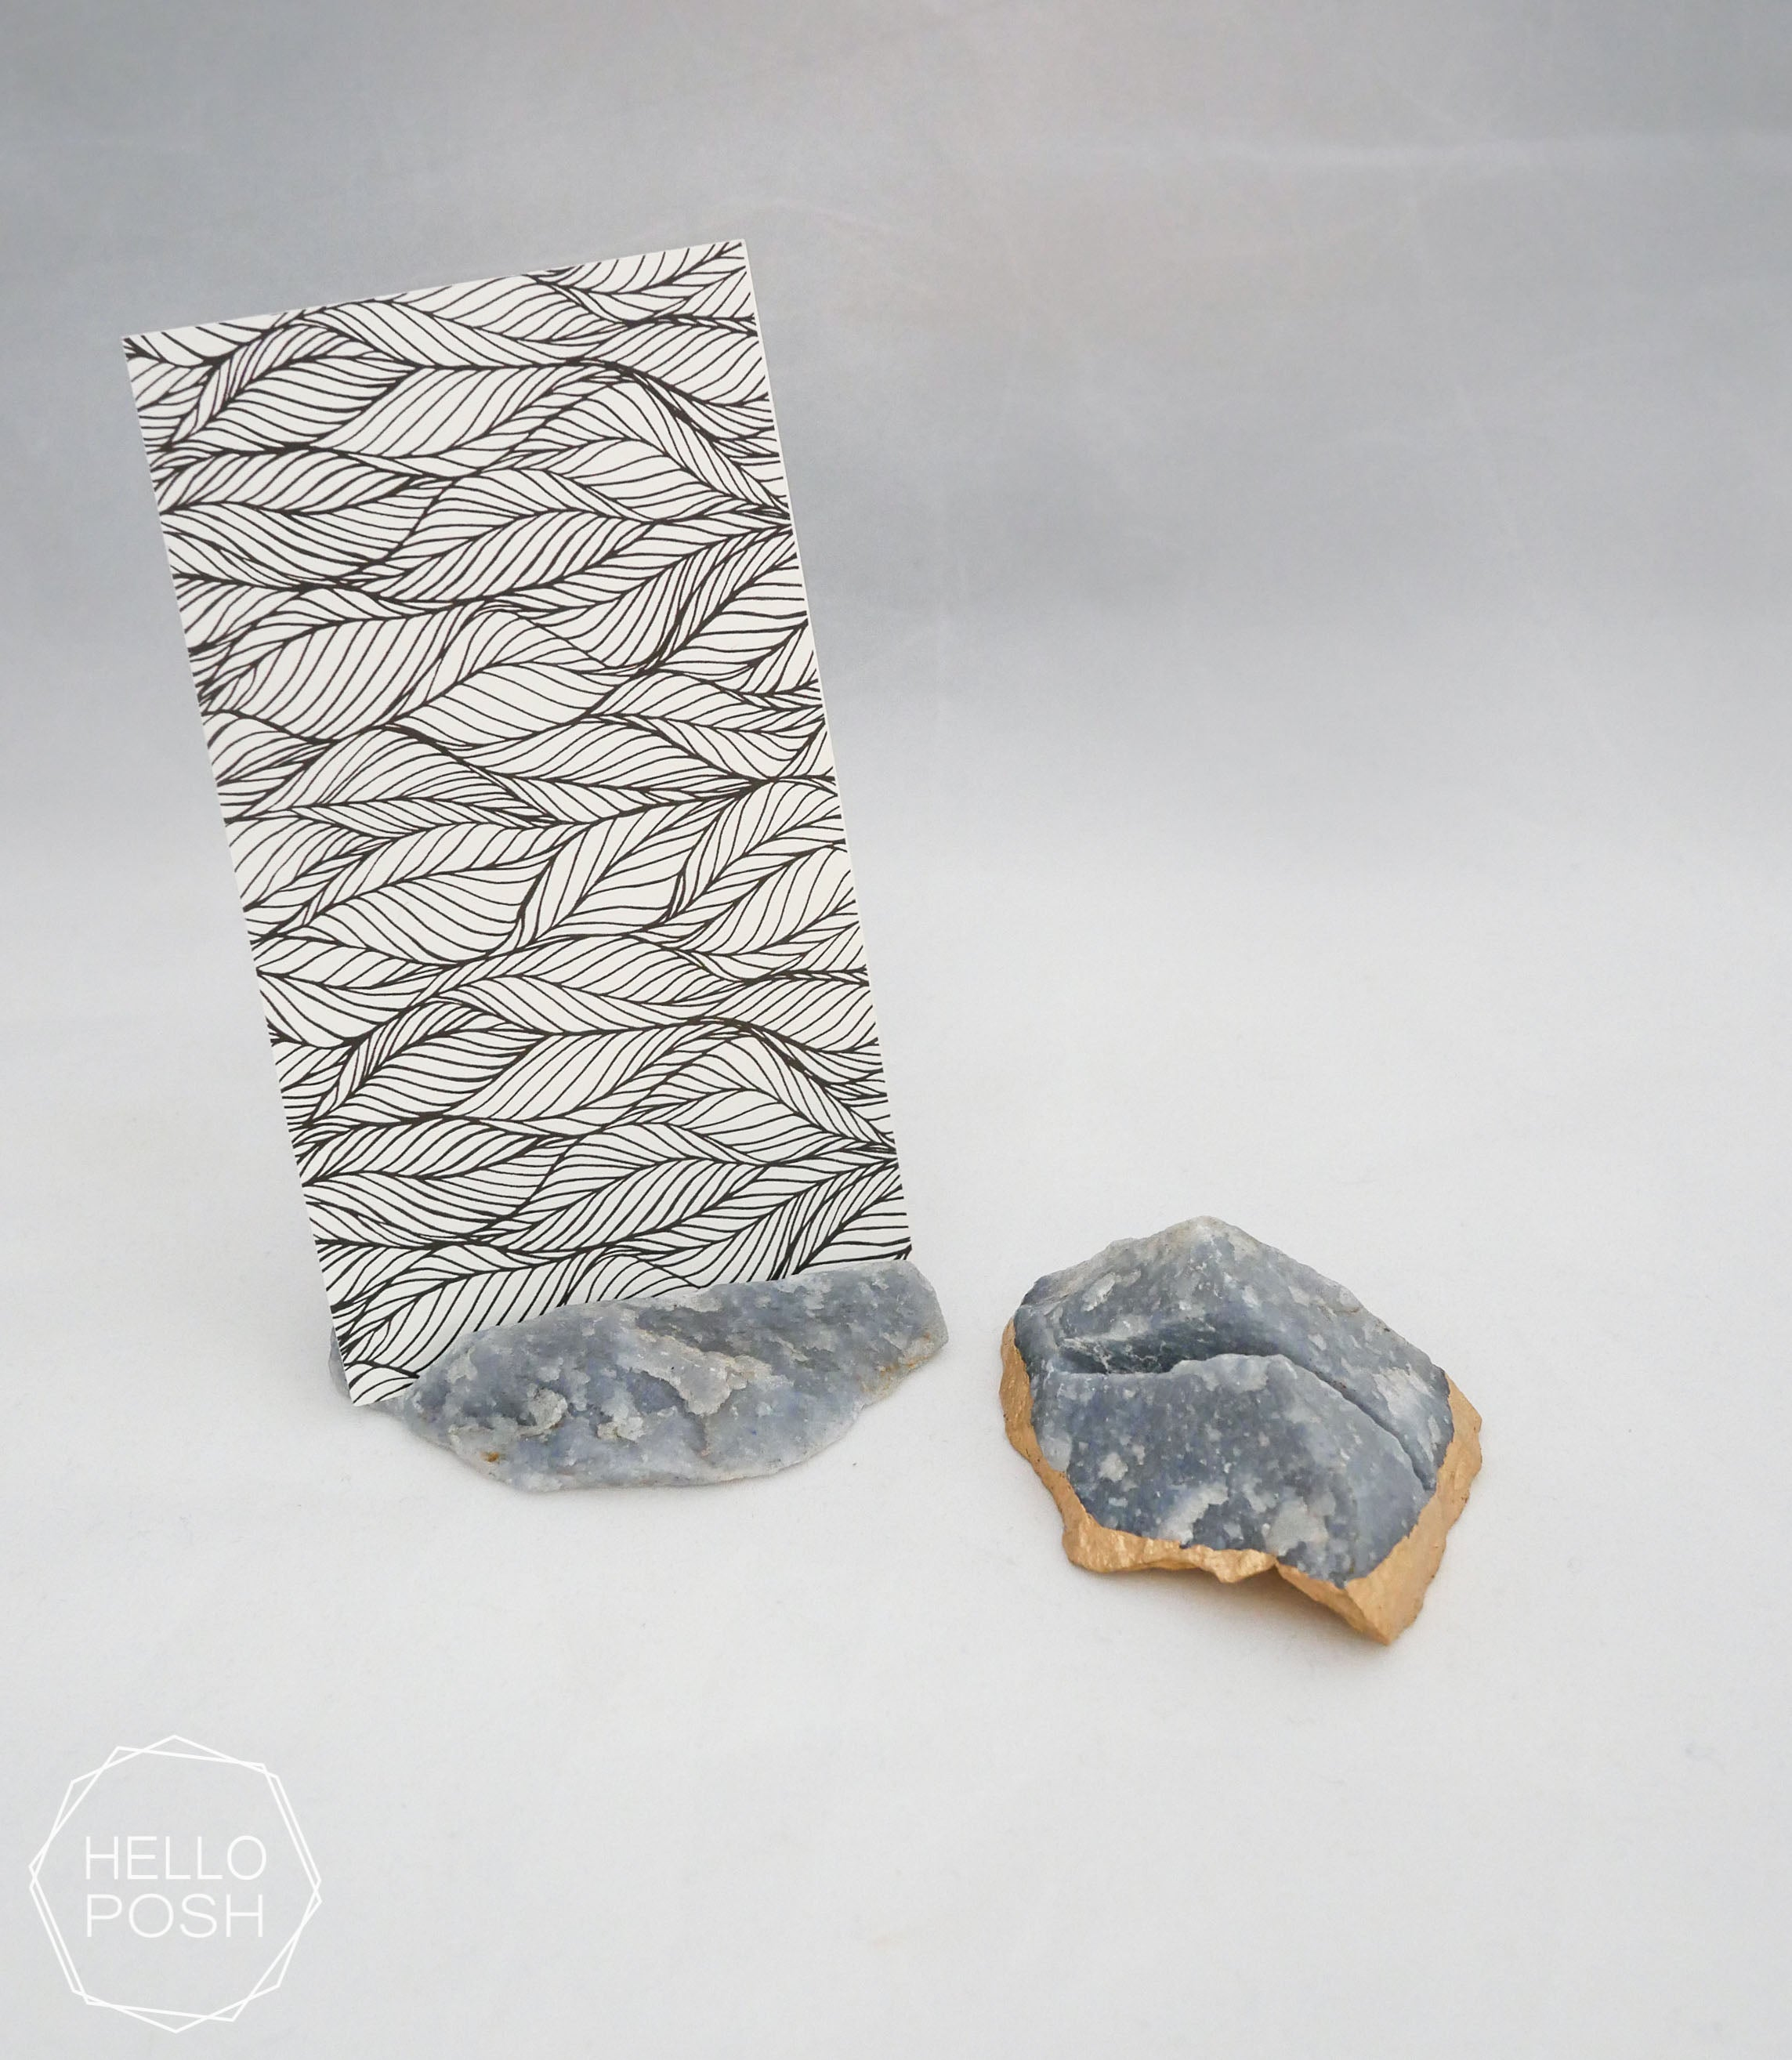 Blue quartz place card holders